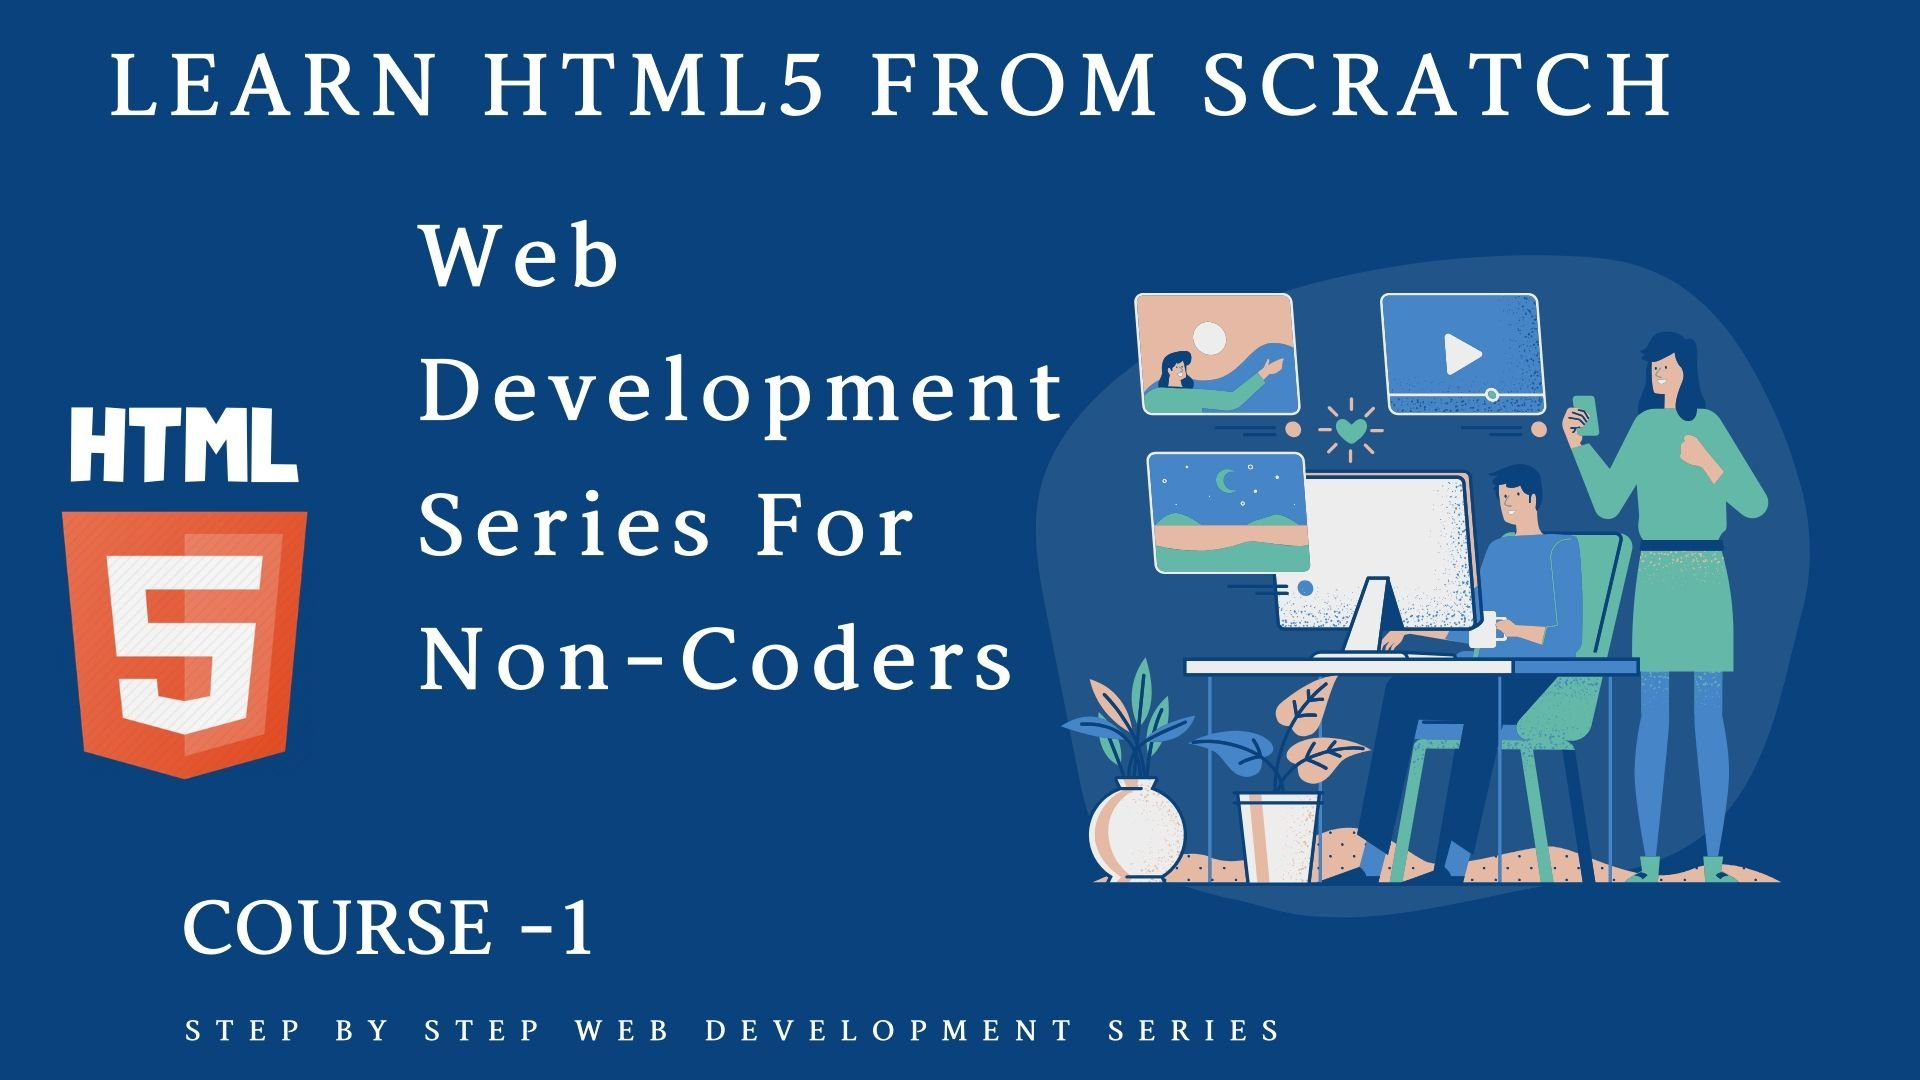 Web Development Series: Course 1 : Learn HTML5 From Scratch Step By Step